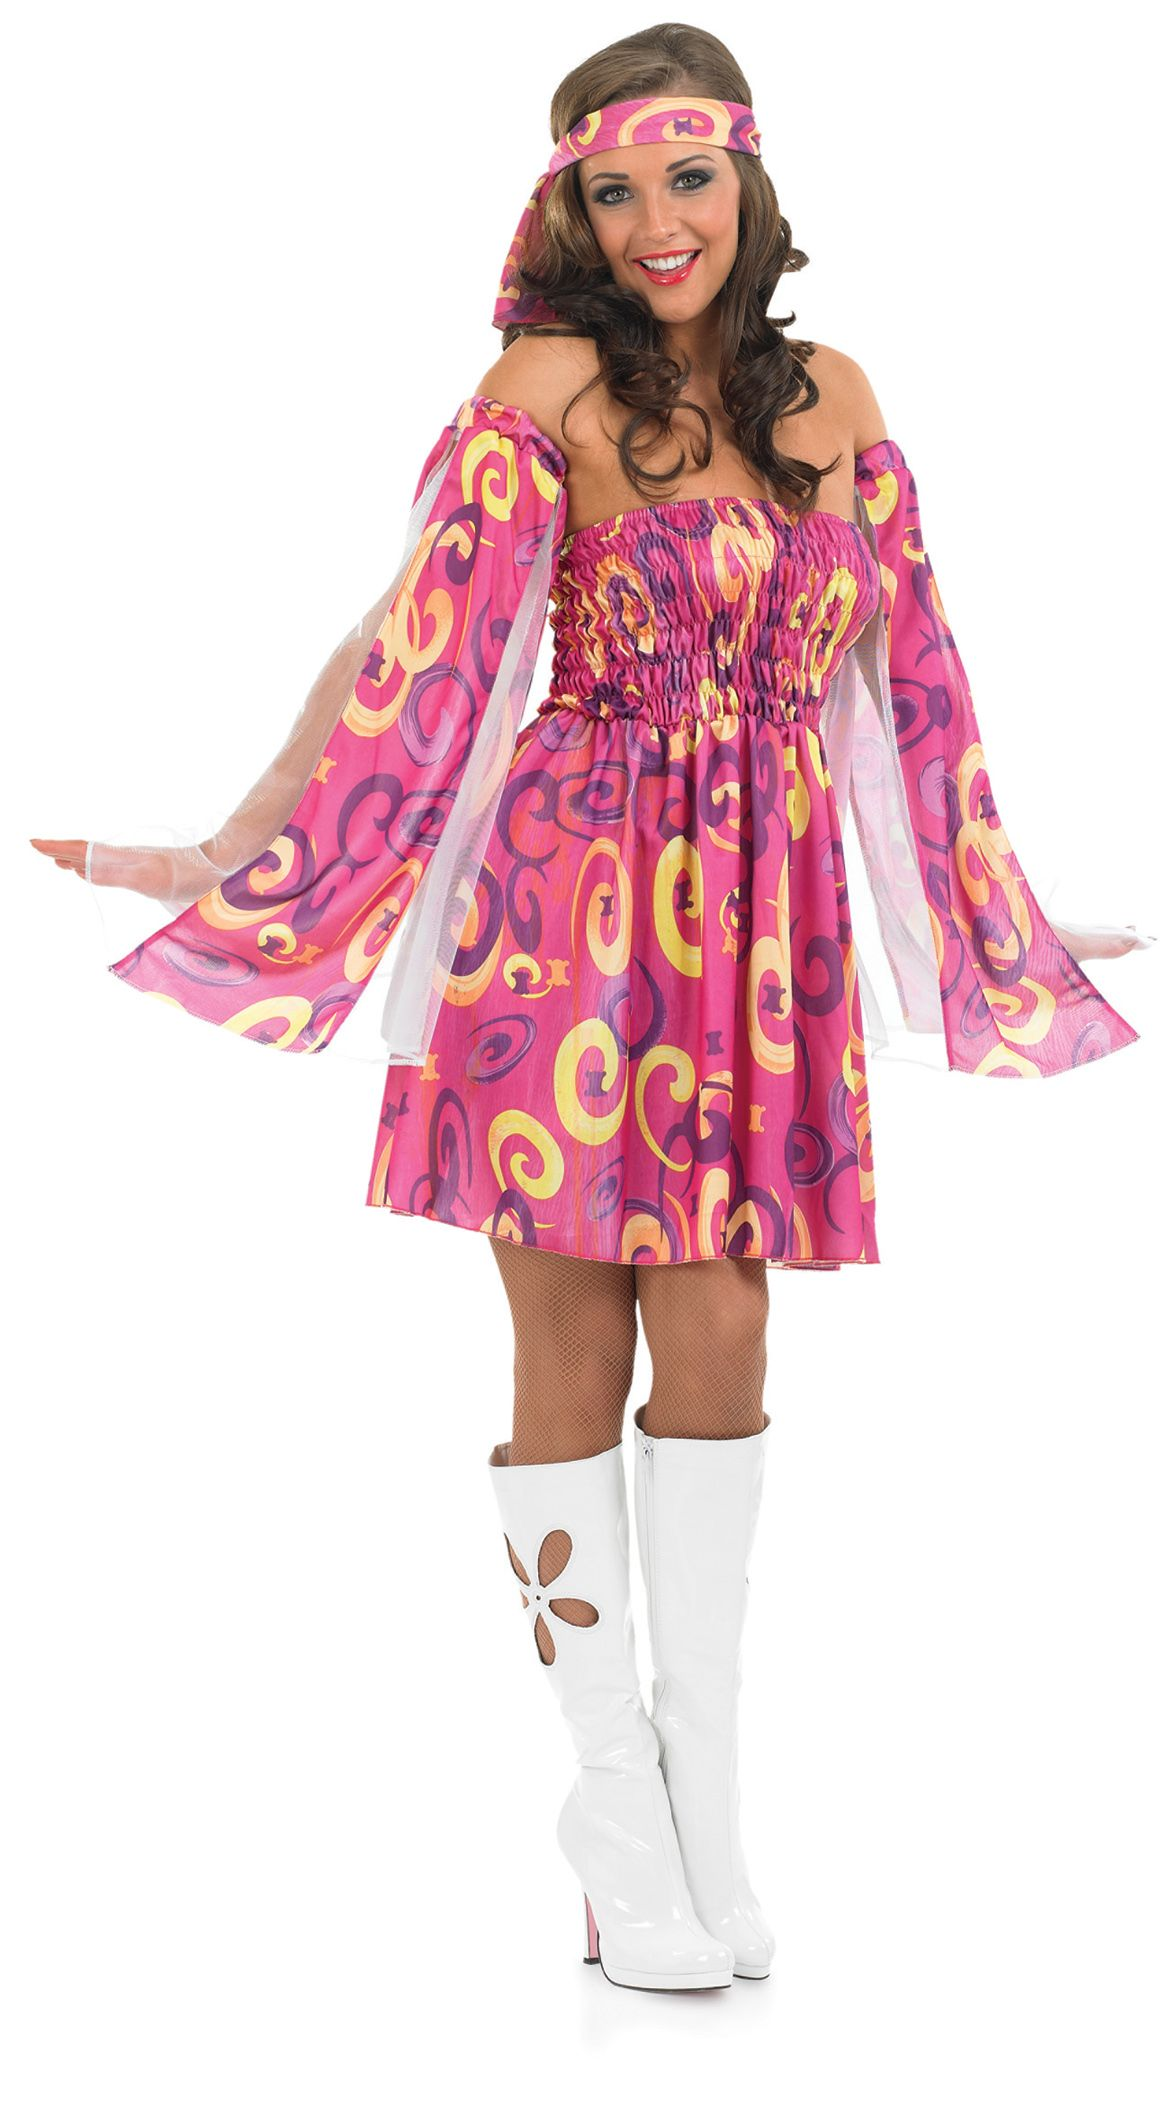 1960s Pink Swirl Hippy Fancy Dress Ladies 60s Hippie Costume Outfit ...